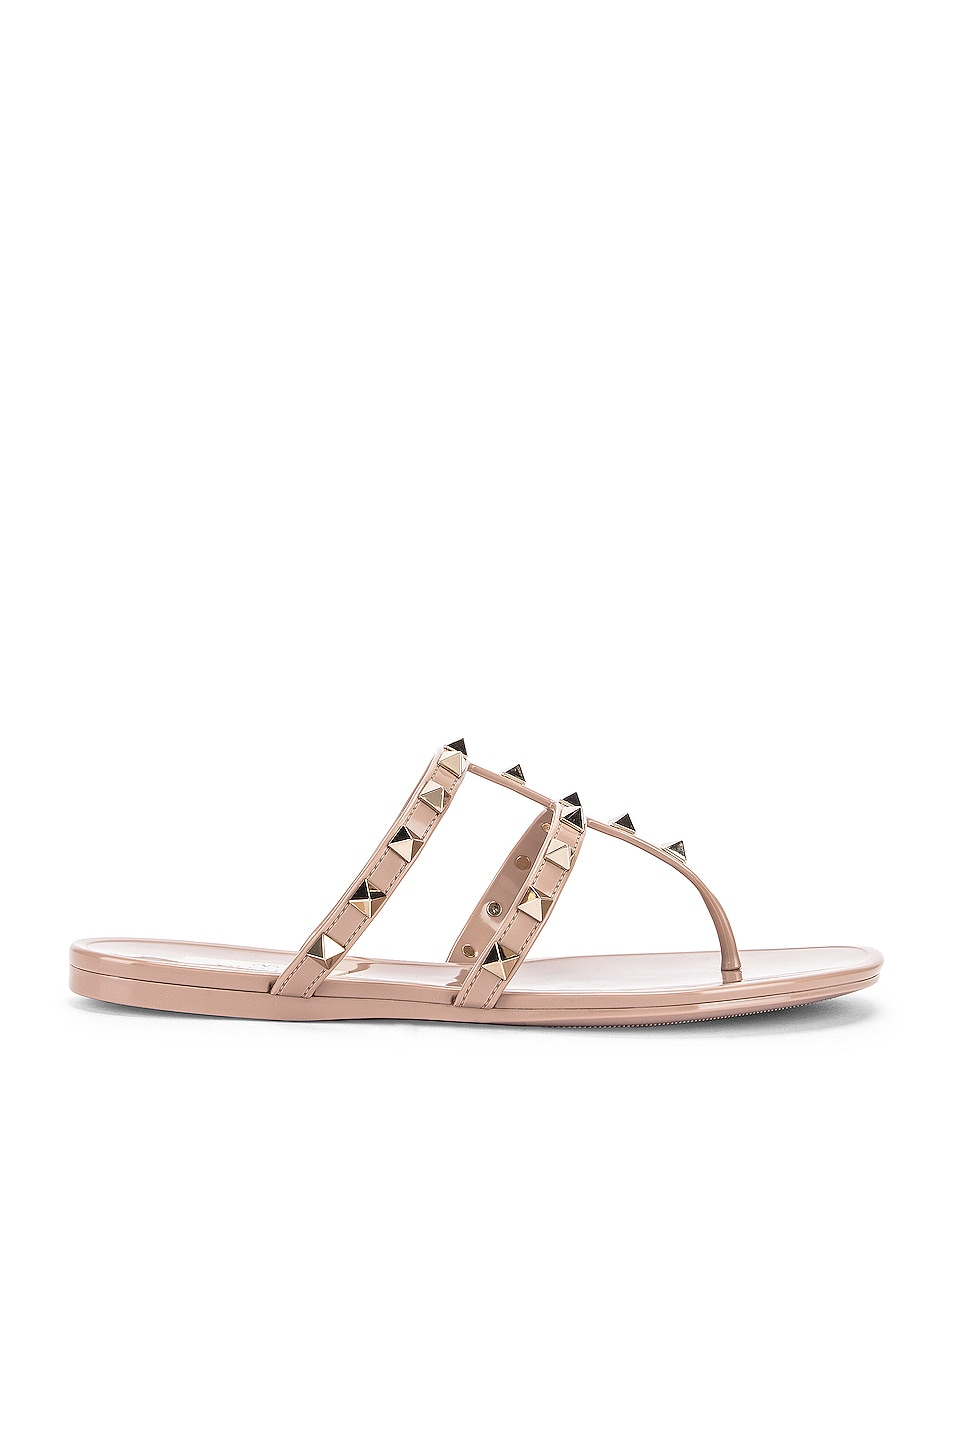 Image 1 of Valentino Rockstud Summer Thong Sandals in Poudre